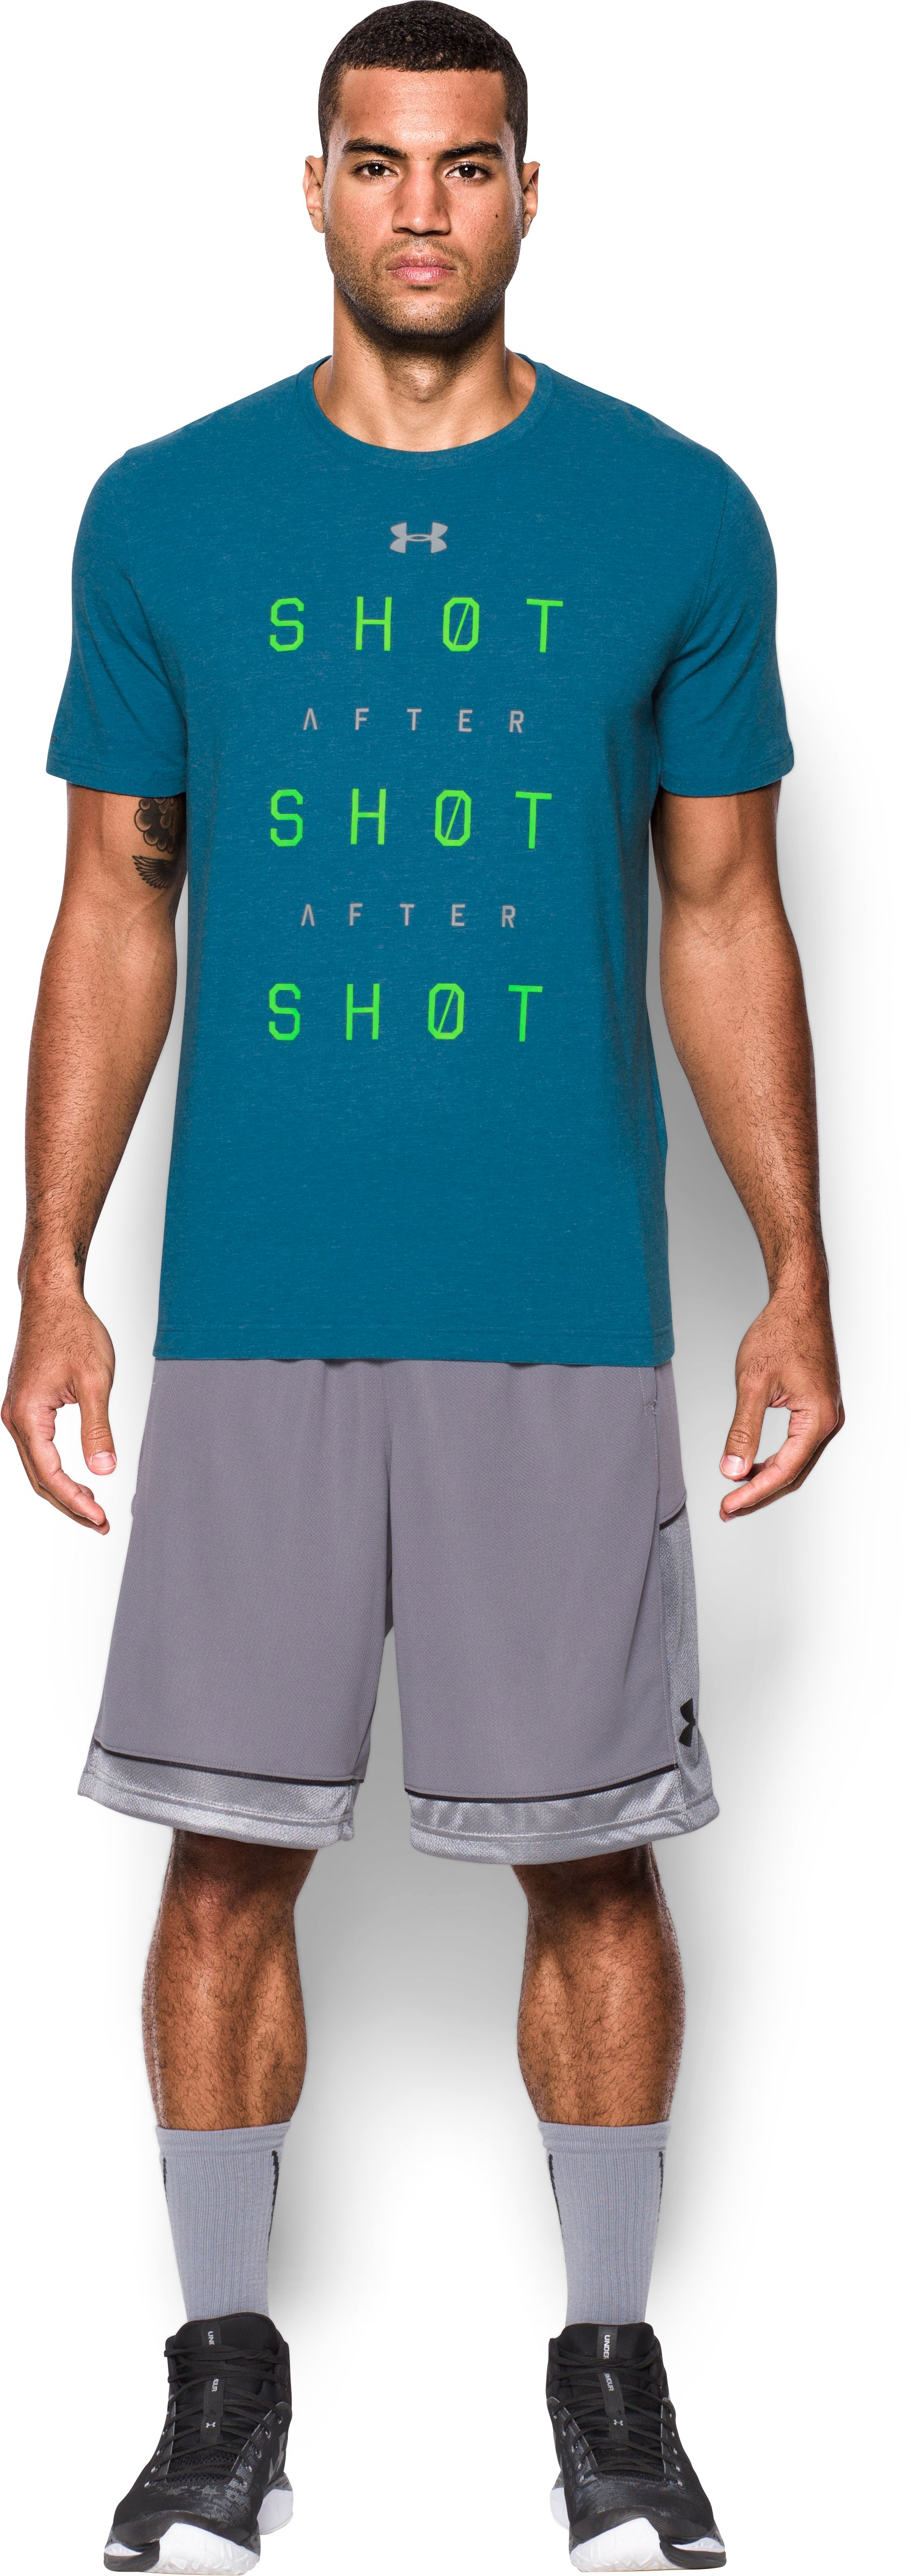 Men's UA Shot After Shot After Shot T-Shirt, PEACOCK, zoomed image